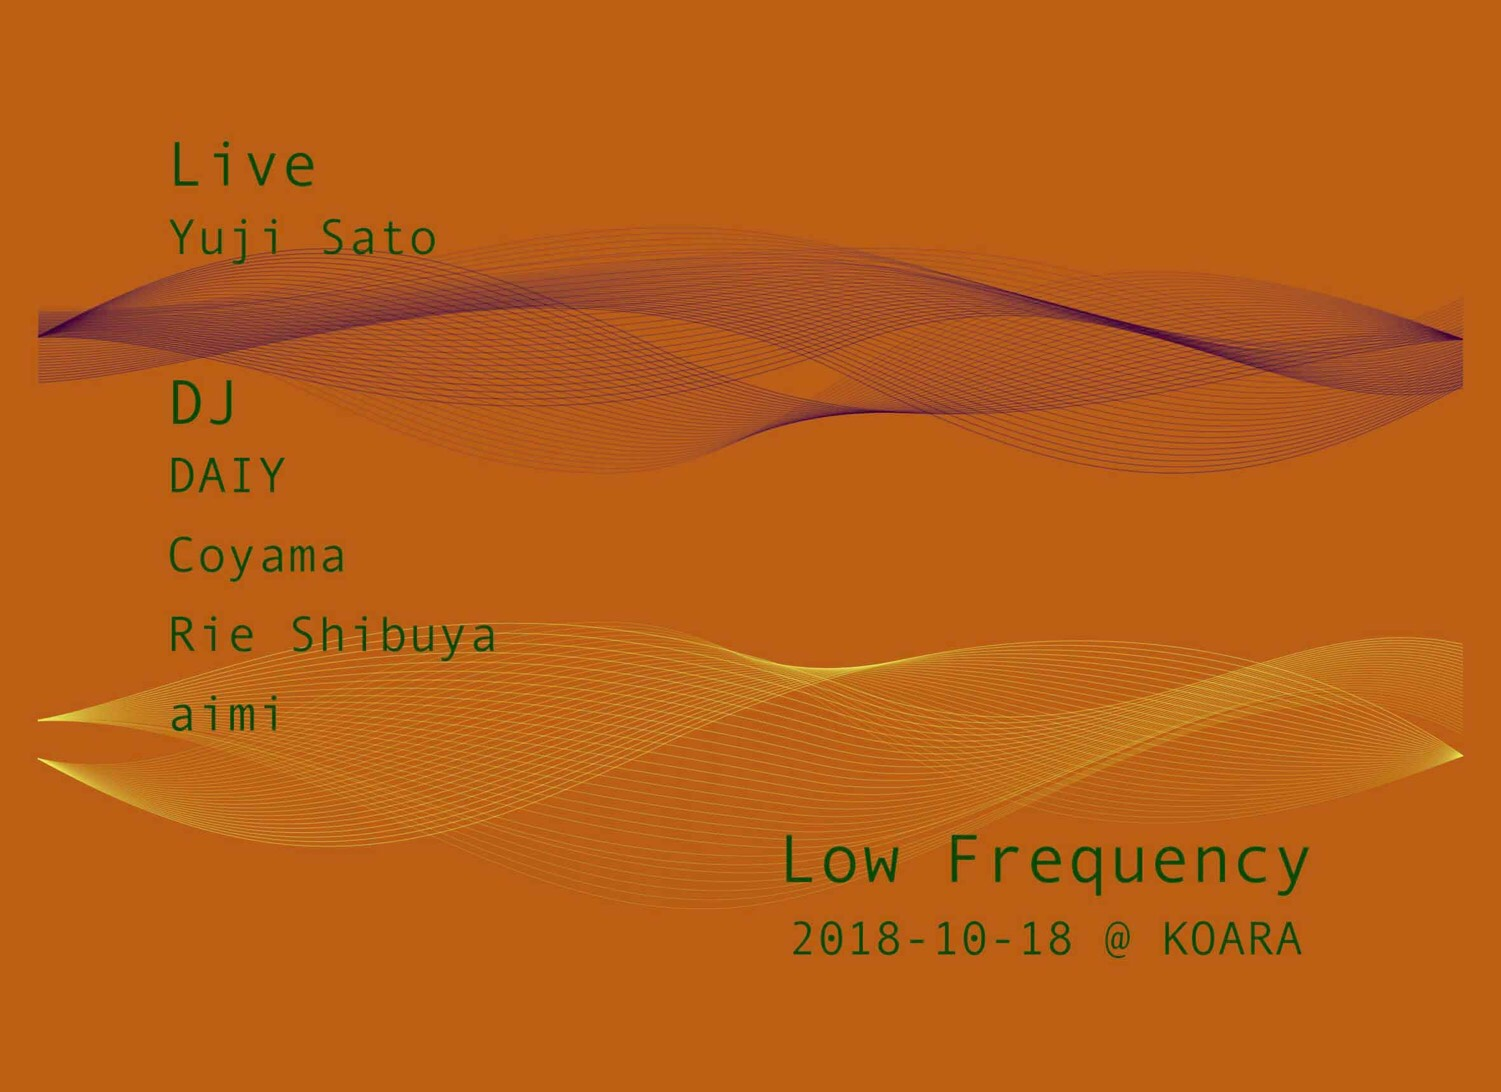 Low Frequency